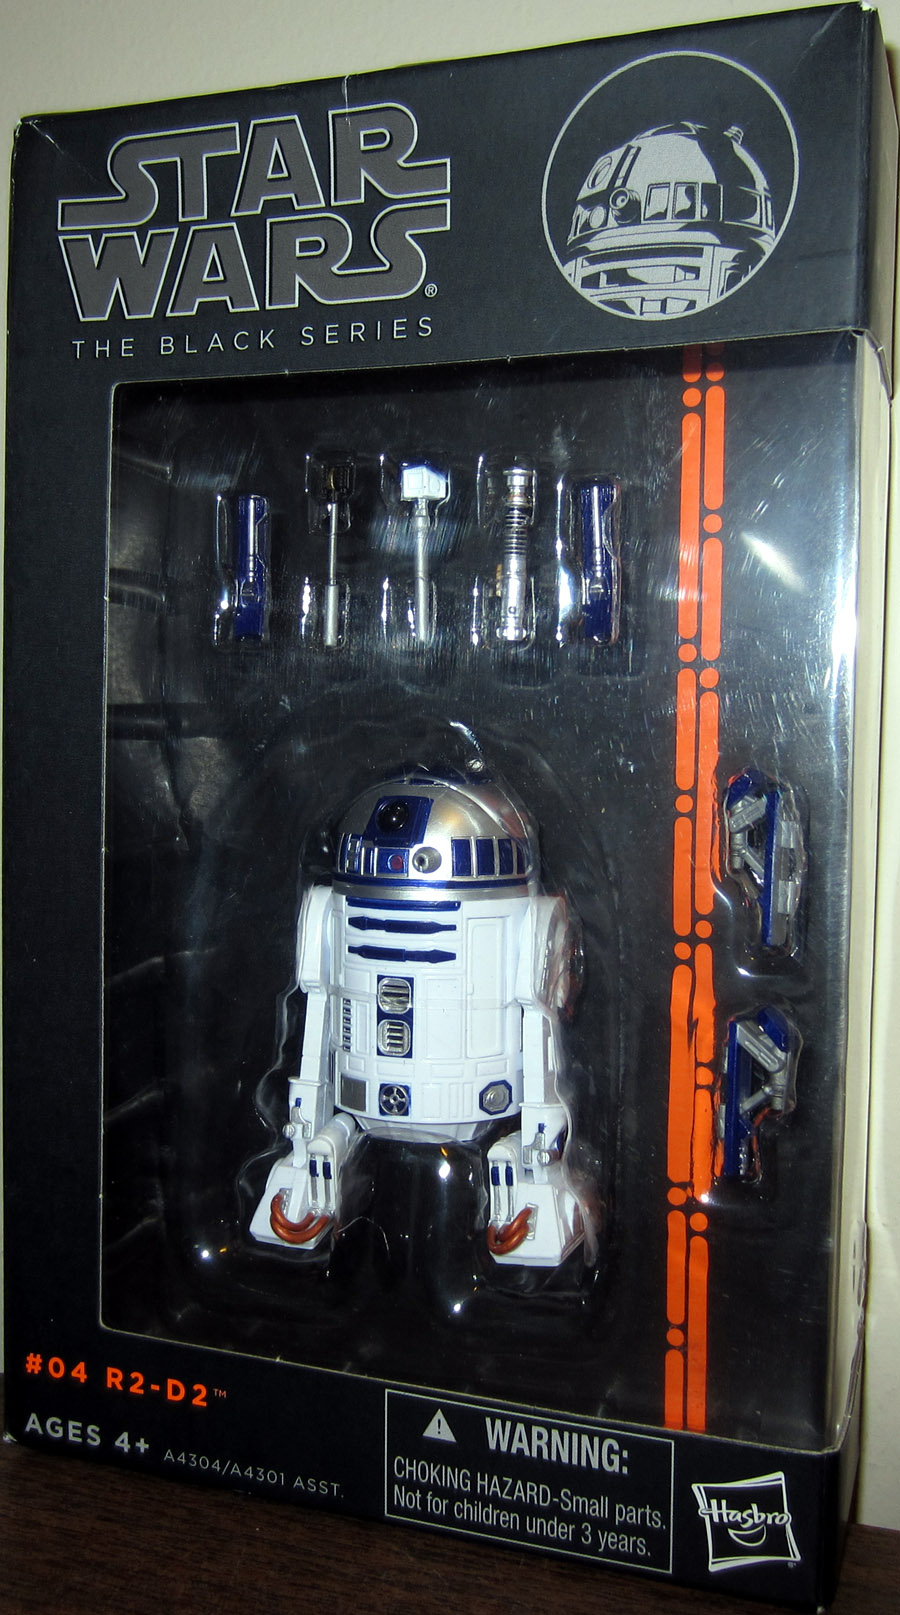 R2-D2 (The Black Series, #04)